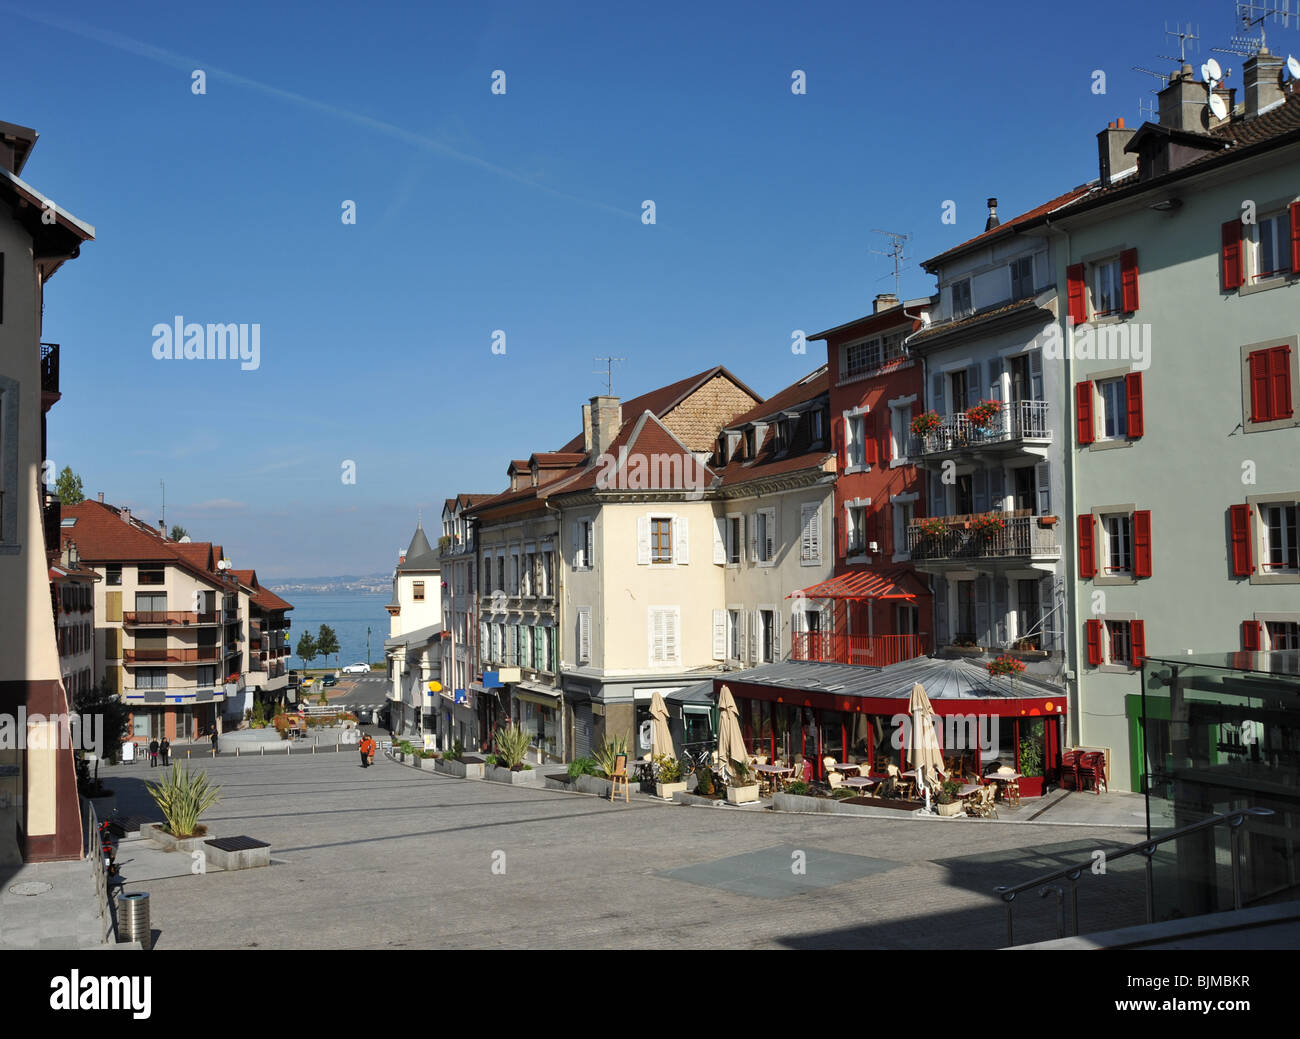 the lakeside town of evian les bains that is situated beside lake stock photo royalty free. Black Bedroom Furniture Sets. Home Design Ideas